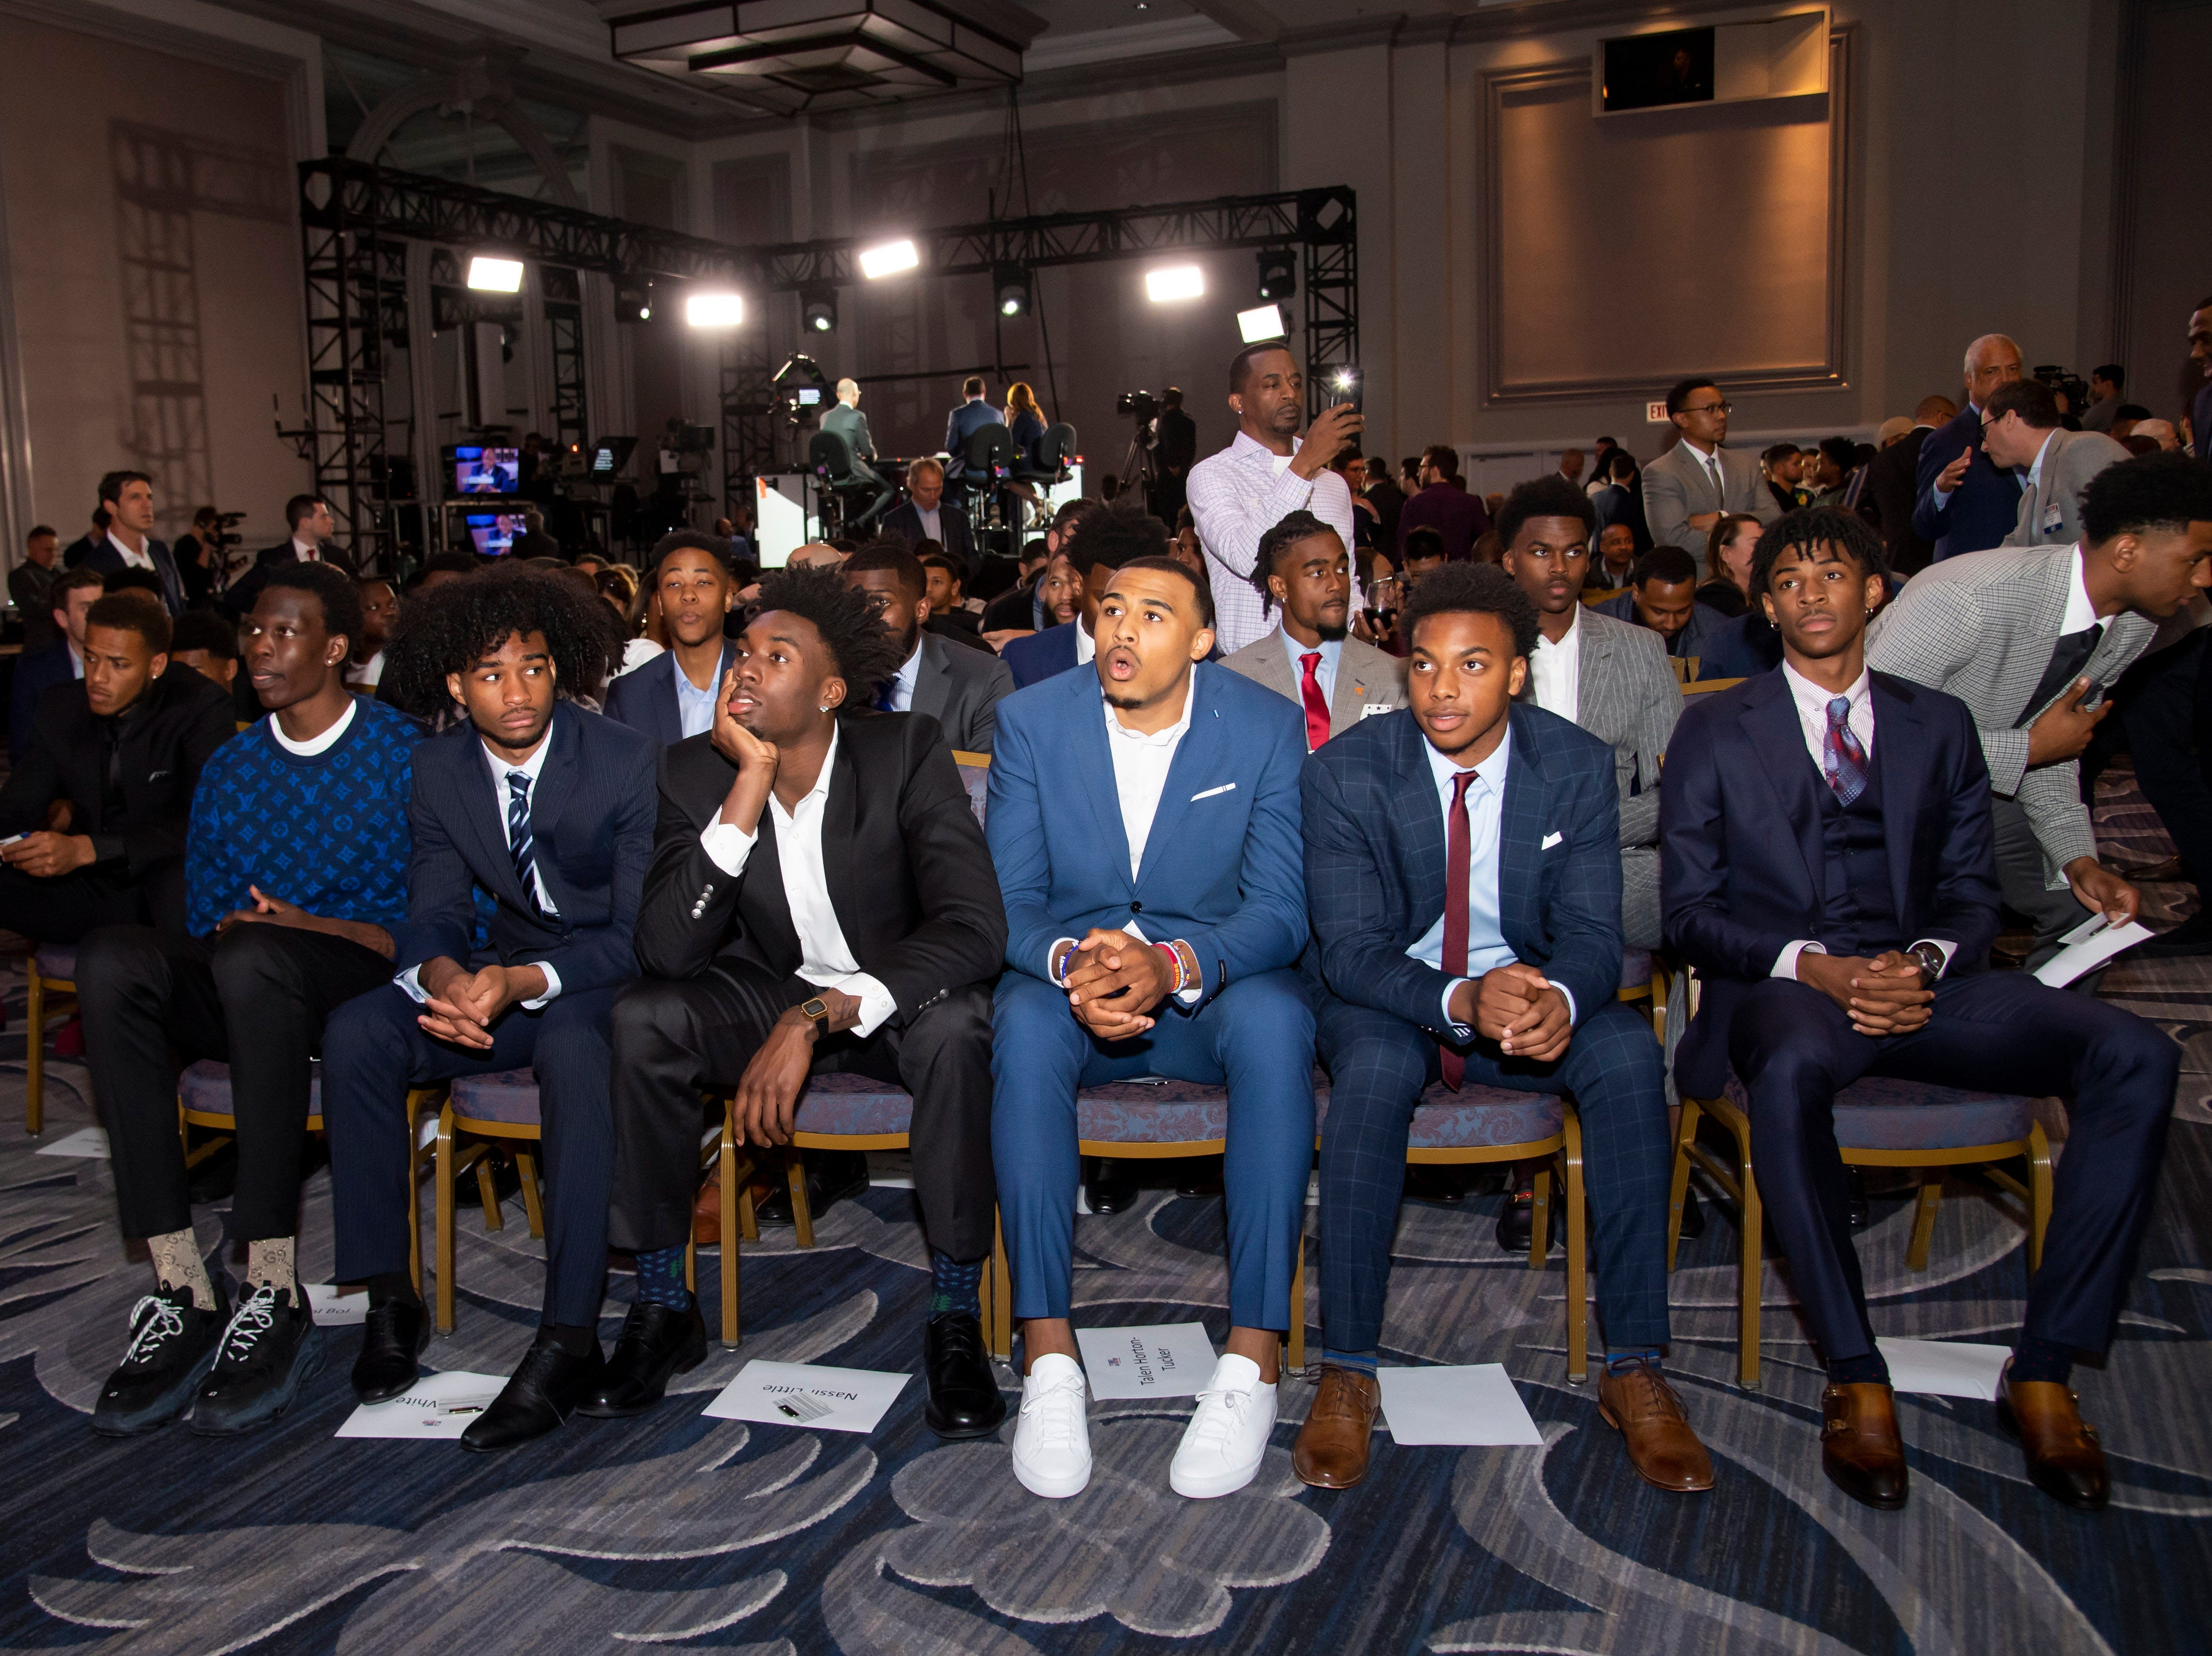 May 14, 2019; Chicago, IL, USA; NBA top prospects are seen during the 2019 NBA Draft Lottery at the Hilton Chicago. Mandatory Credit: Patrick Gorski-USA TODAY Sports